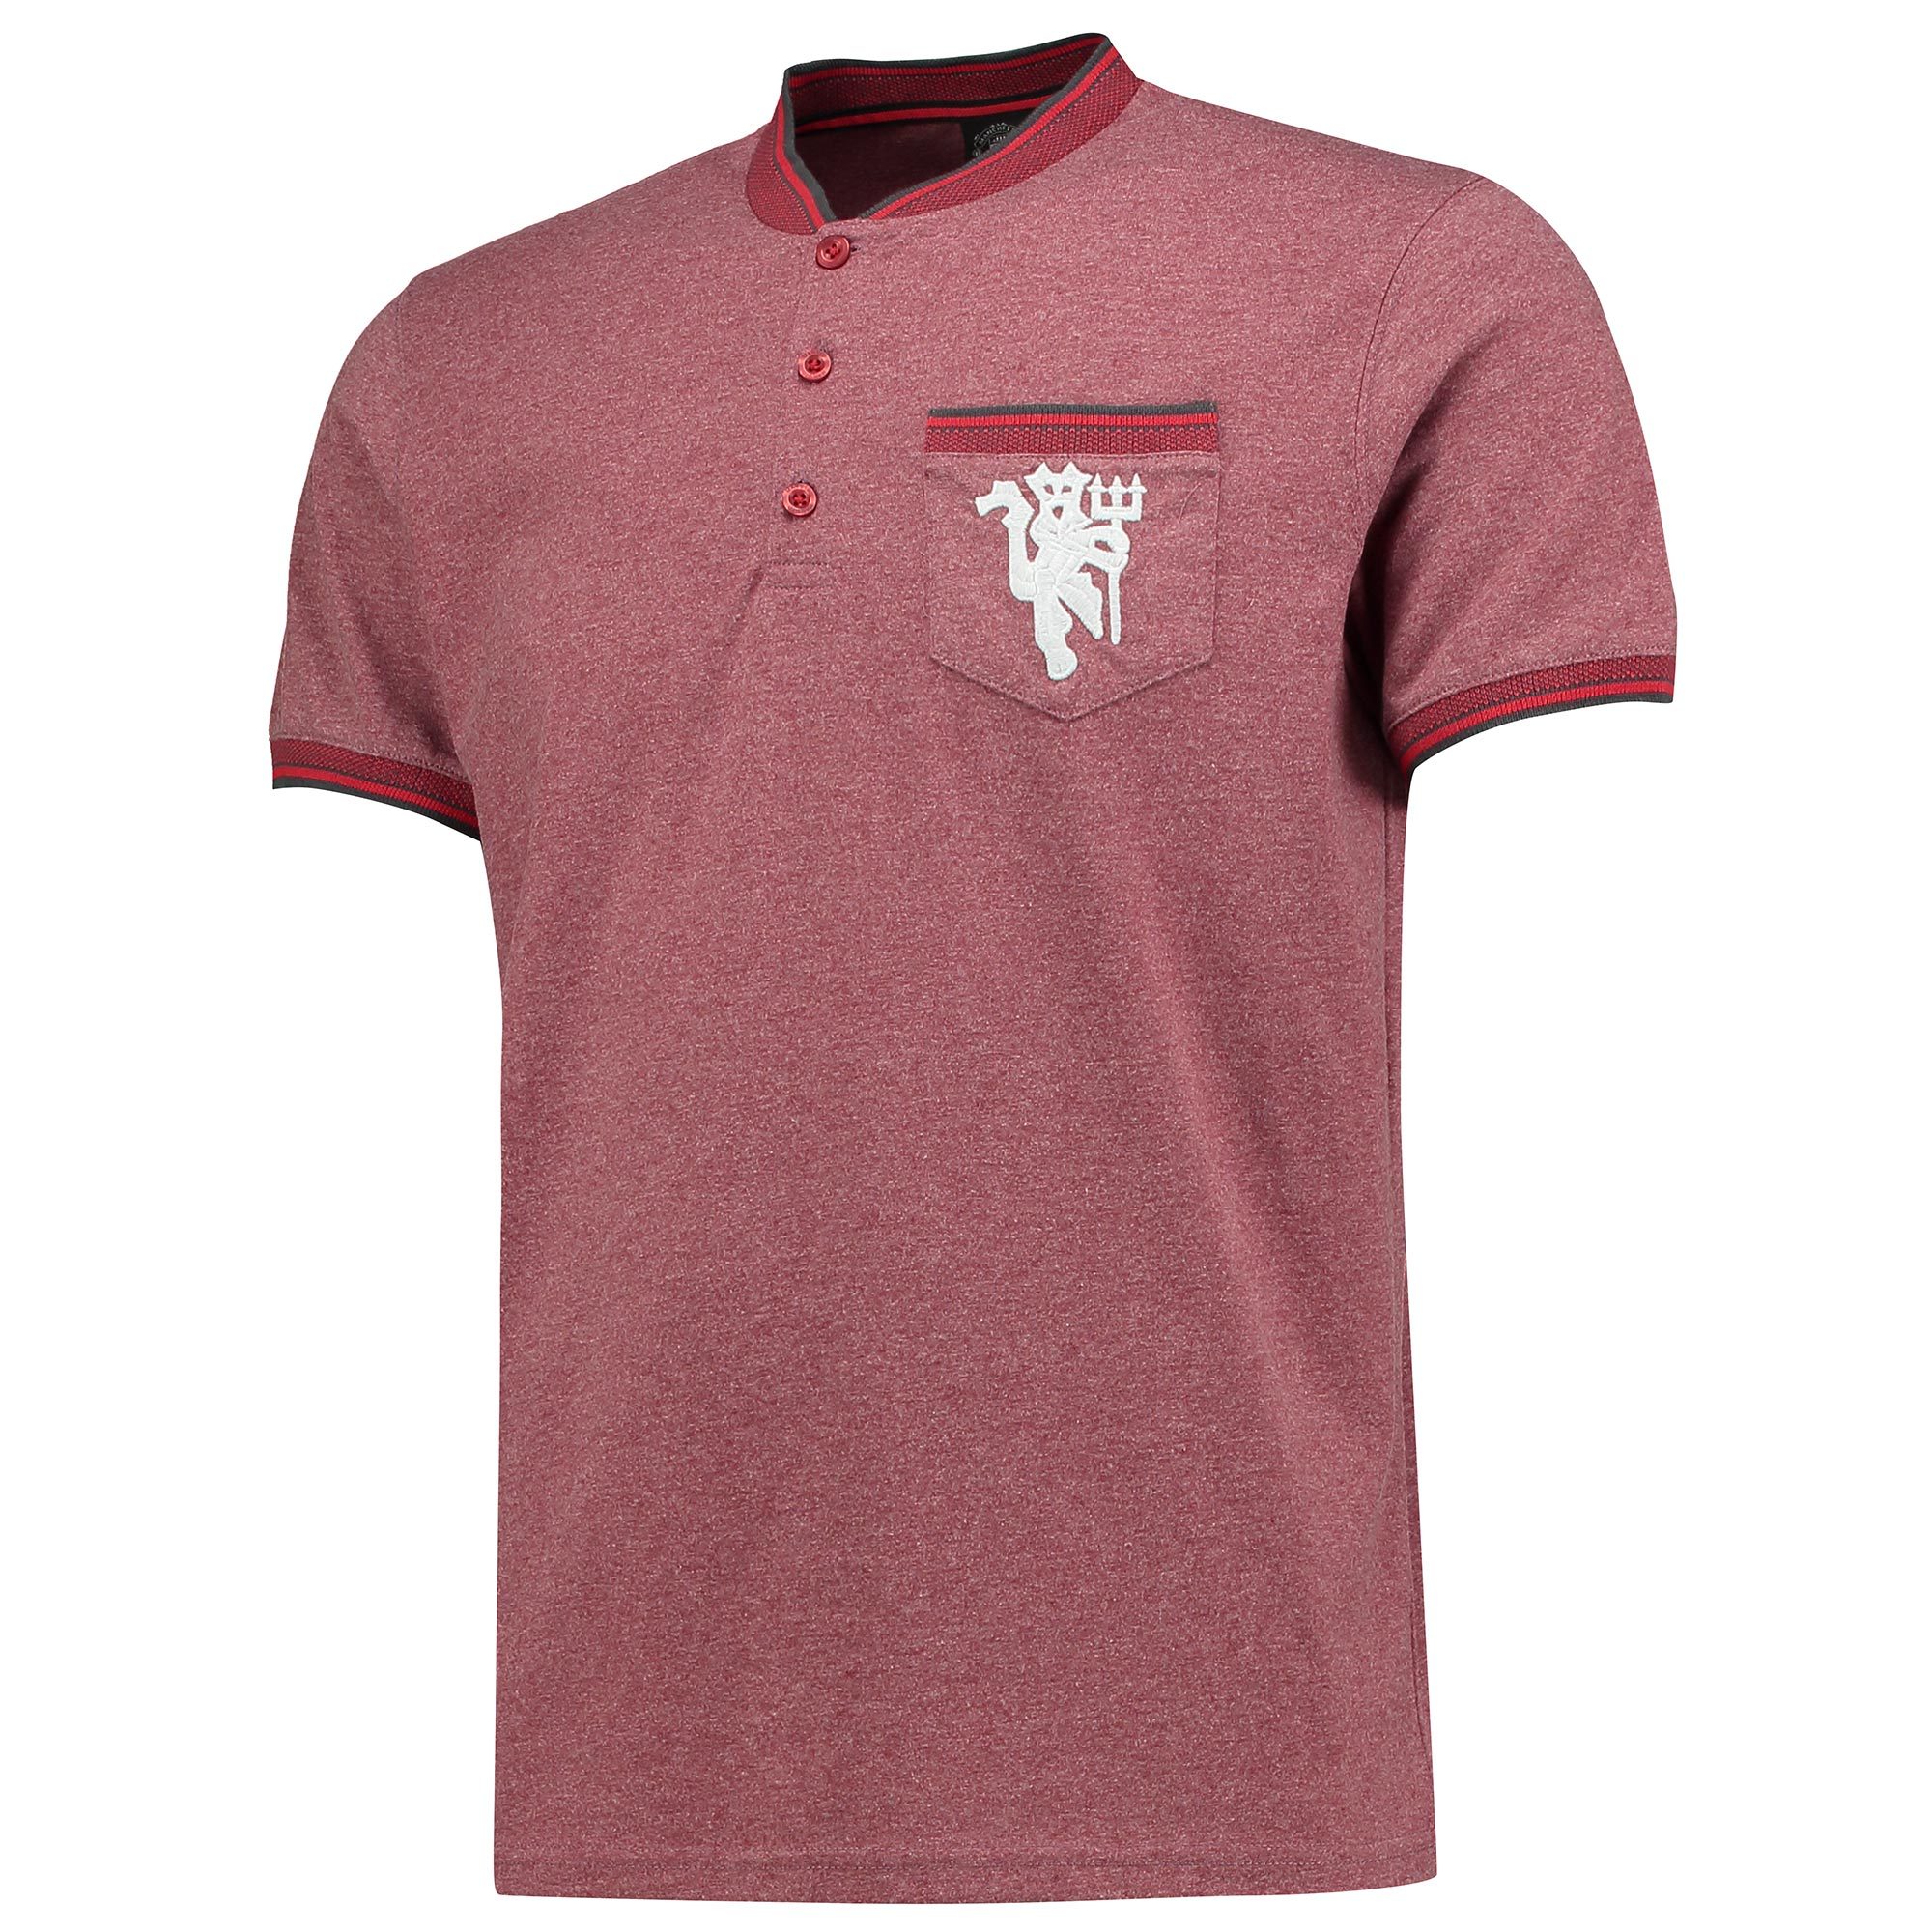 Manchester United Lifestyle Pocket T-Shirt - Burgundy - Mens